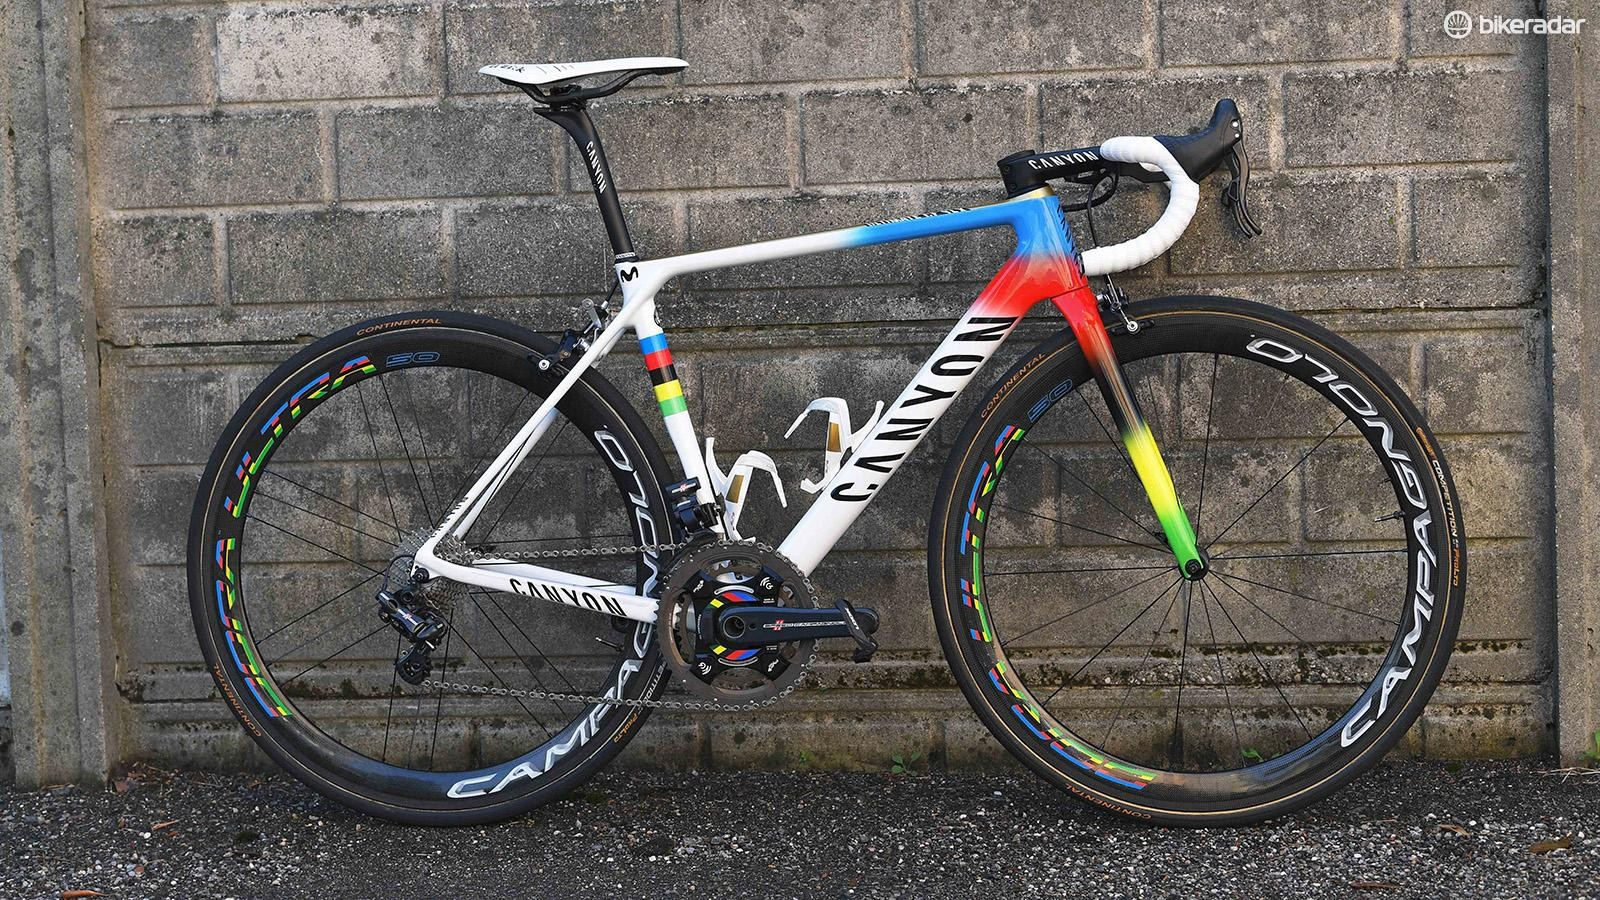 Alejandro Valverde's custom-painted Canyon Ultimate CF SLX